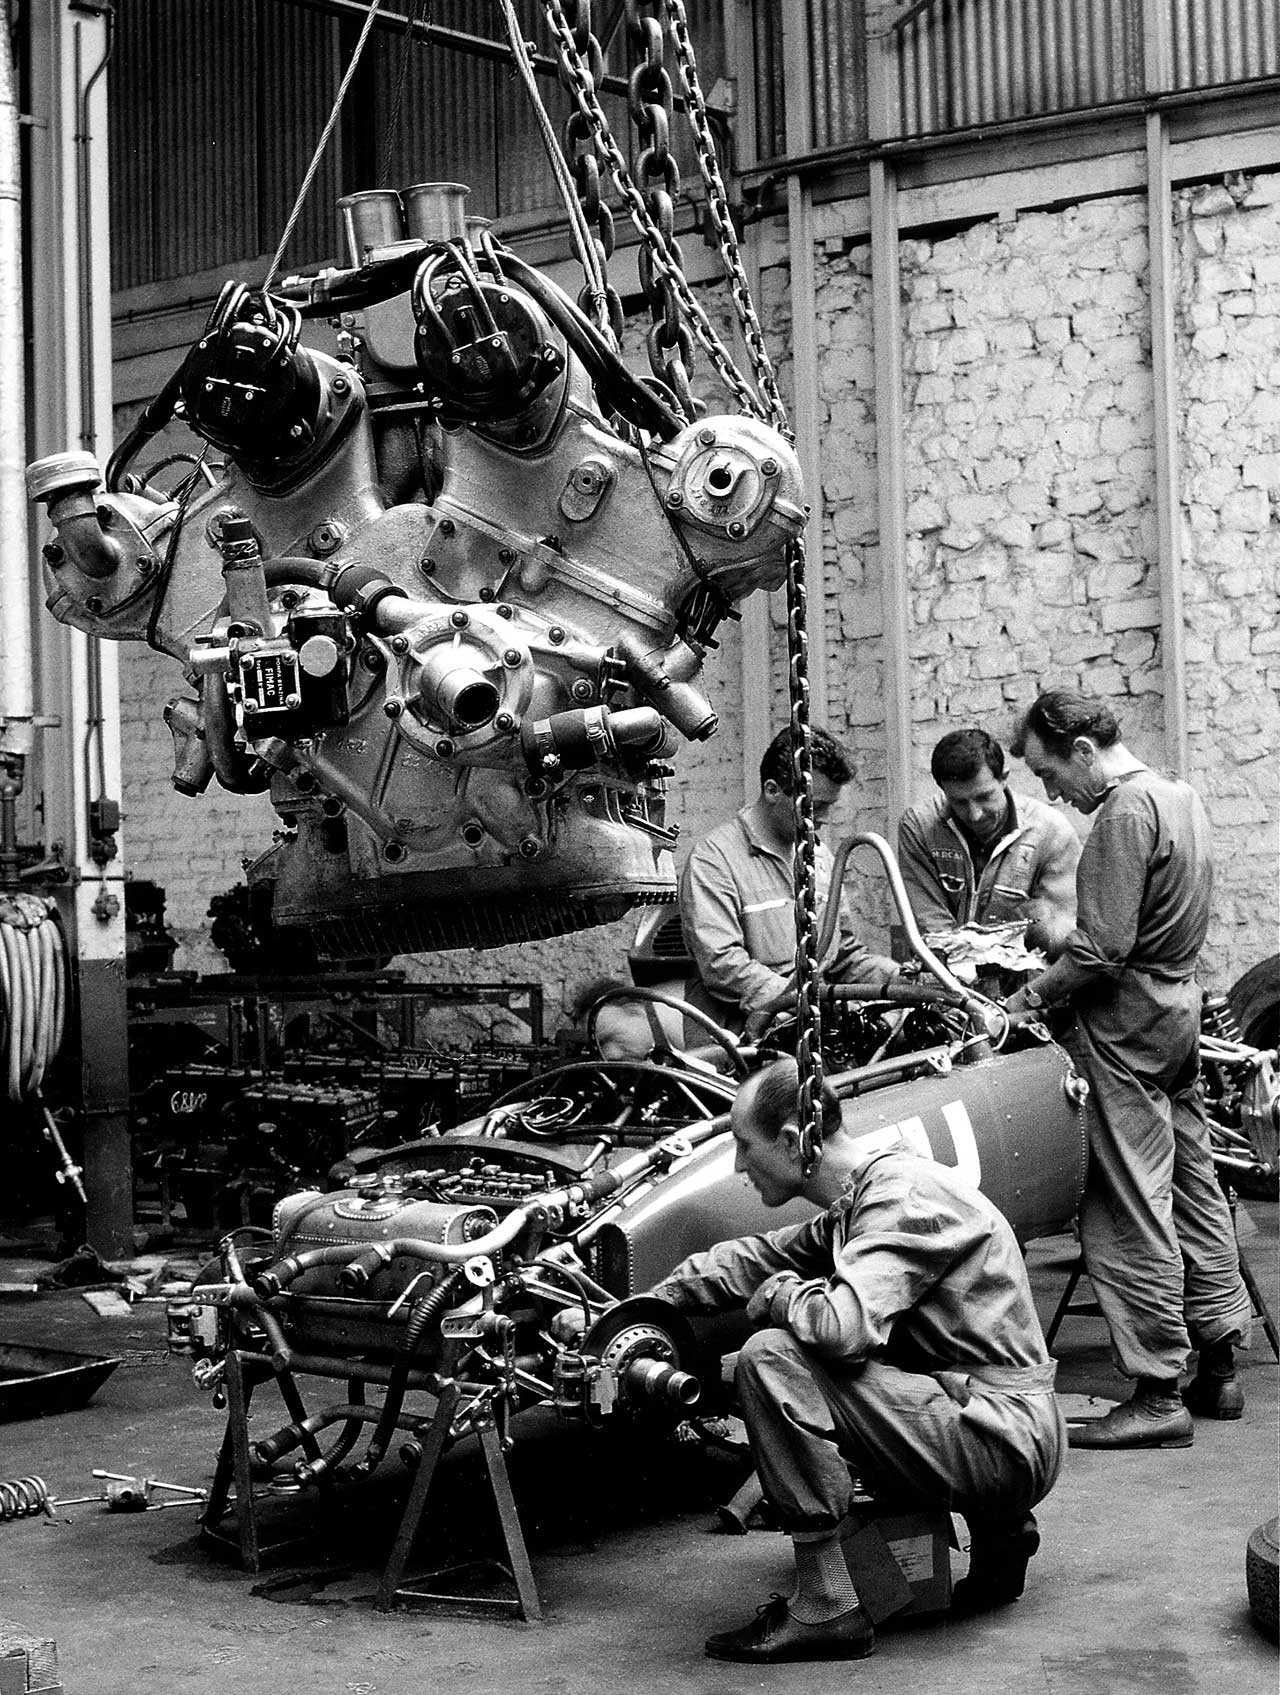 The car is the 156 F1, no. 50; The engine hanging, in the foreground, is 6-cylinder V of 65. Photo courtesy of Ferrari.